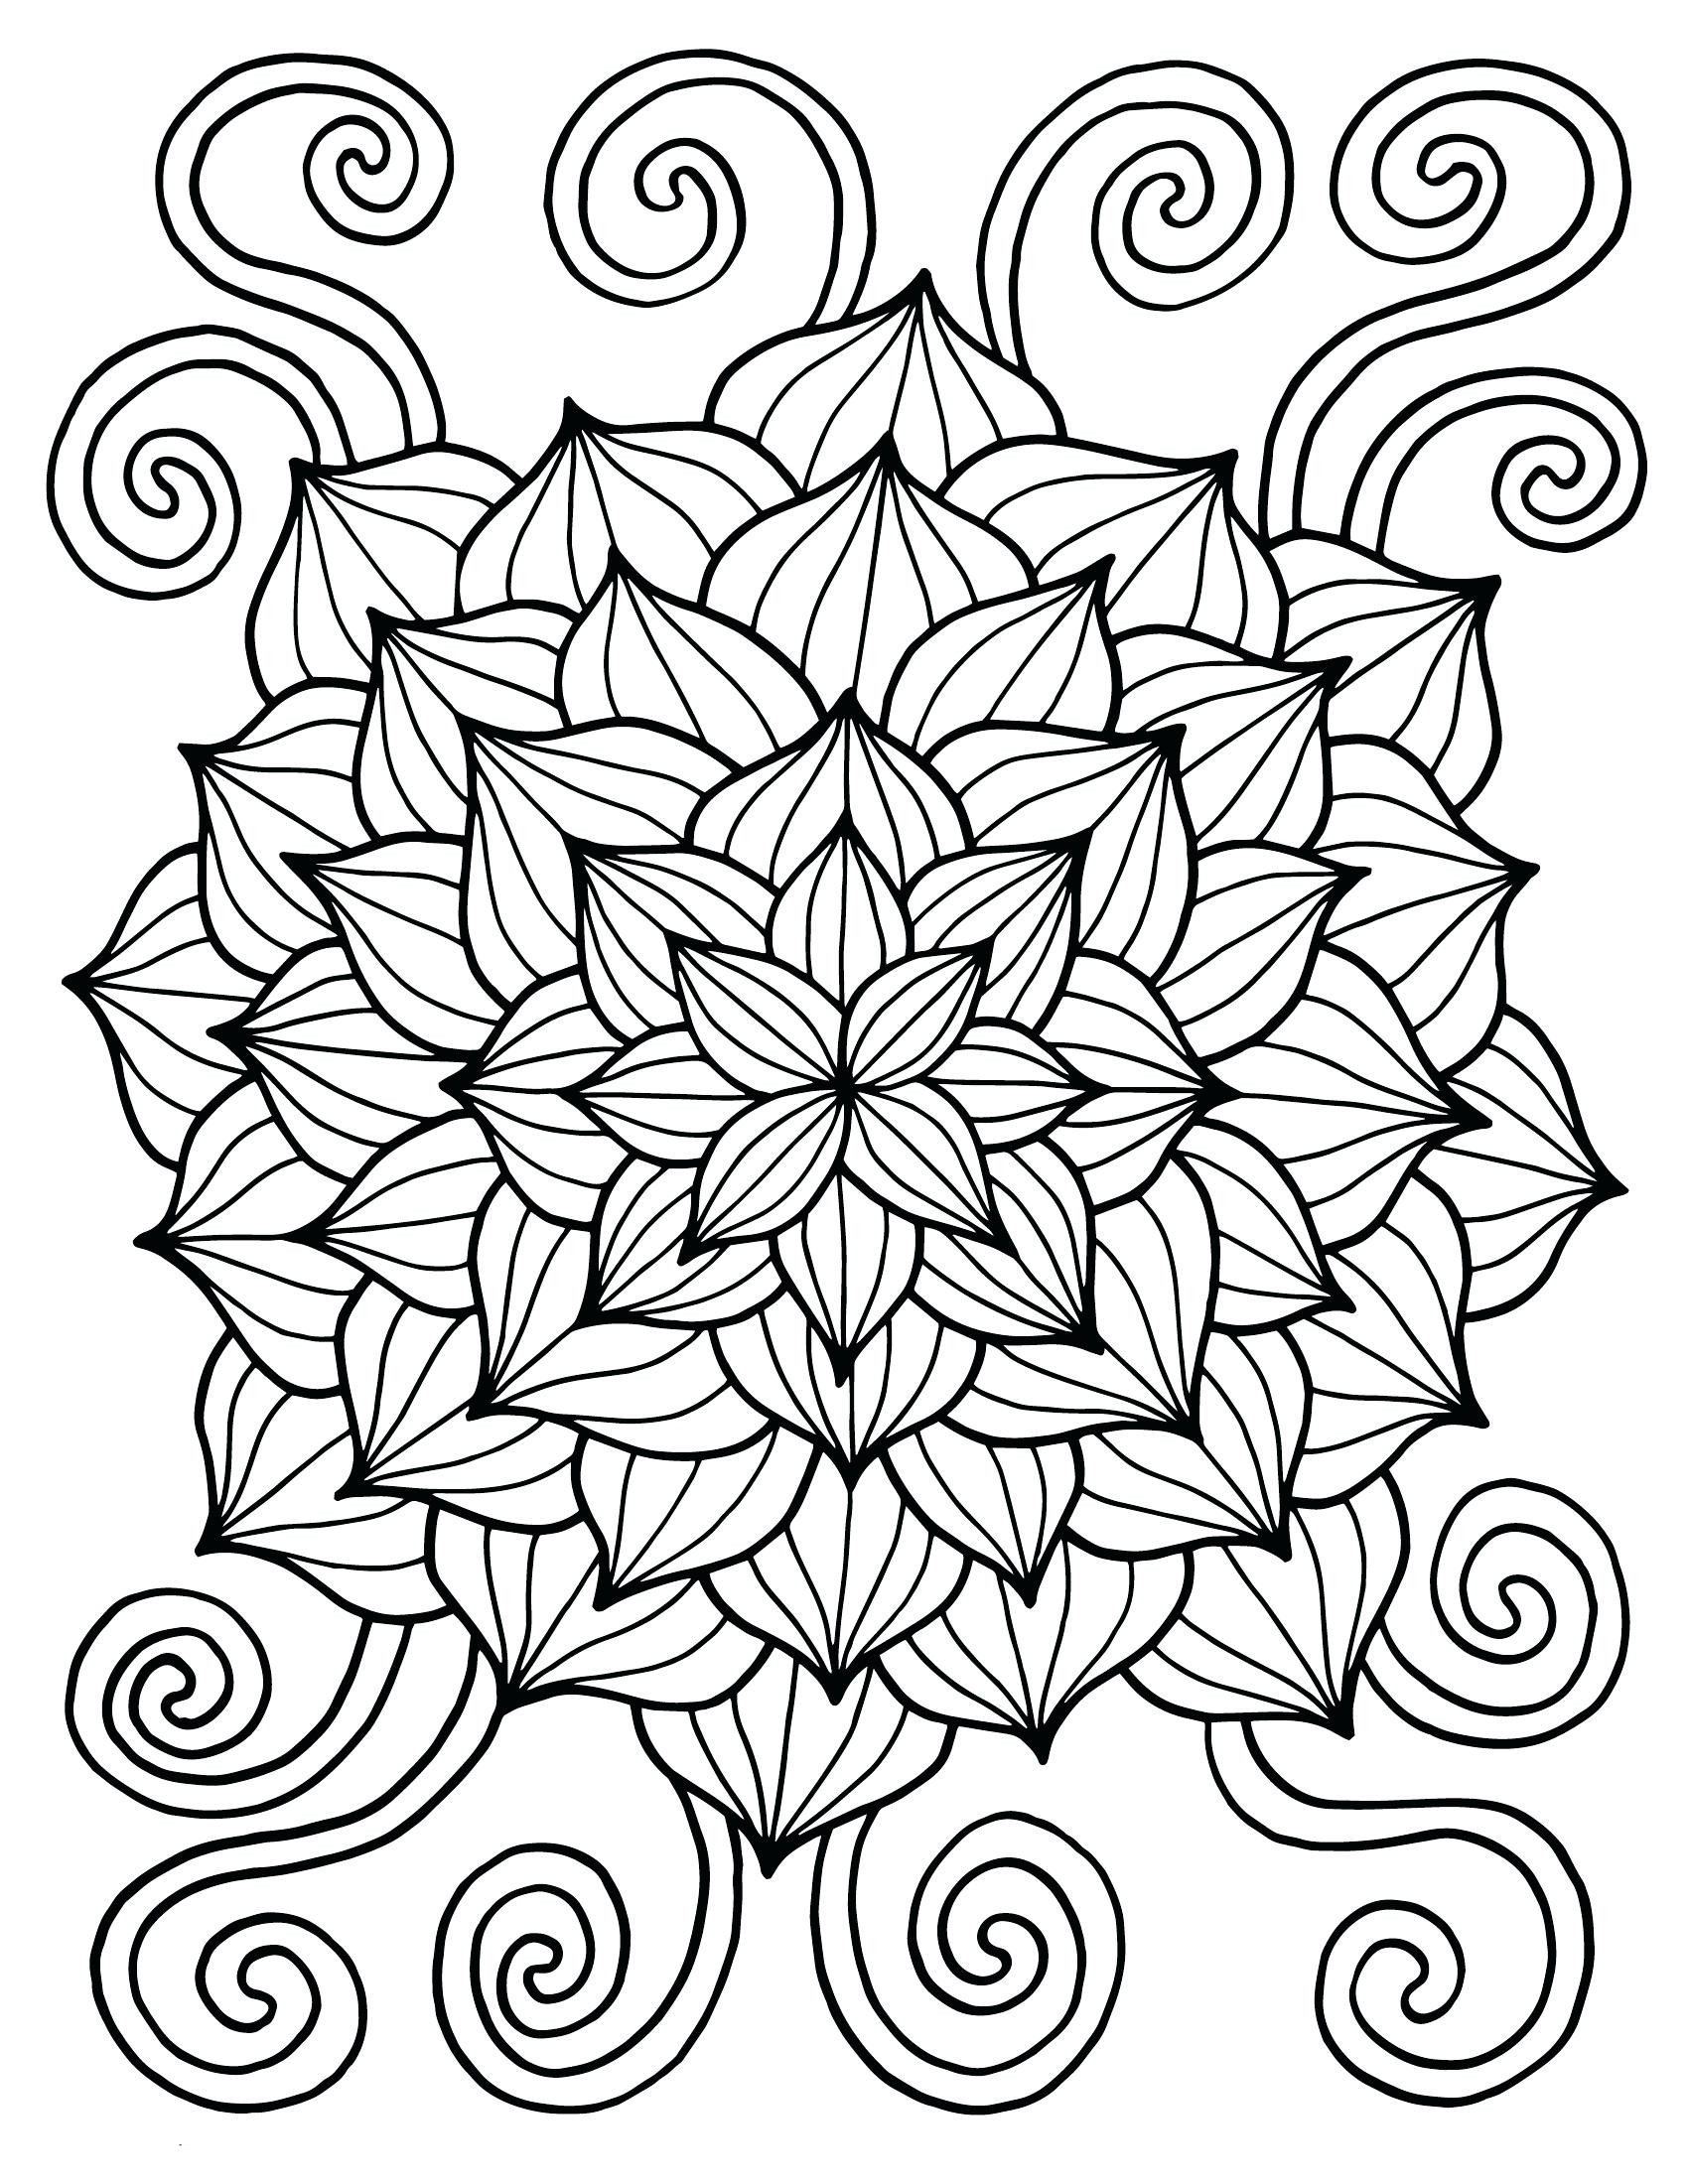 Coloring Pages Of Flowers For Kids  Spring Coloring Pages Best Coloring Pages For Kids